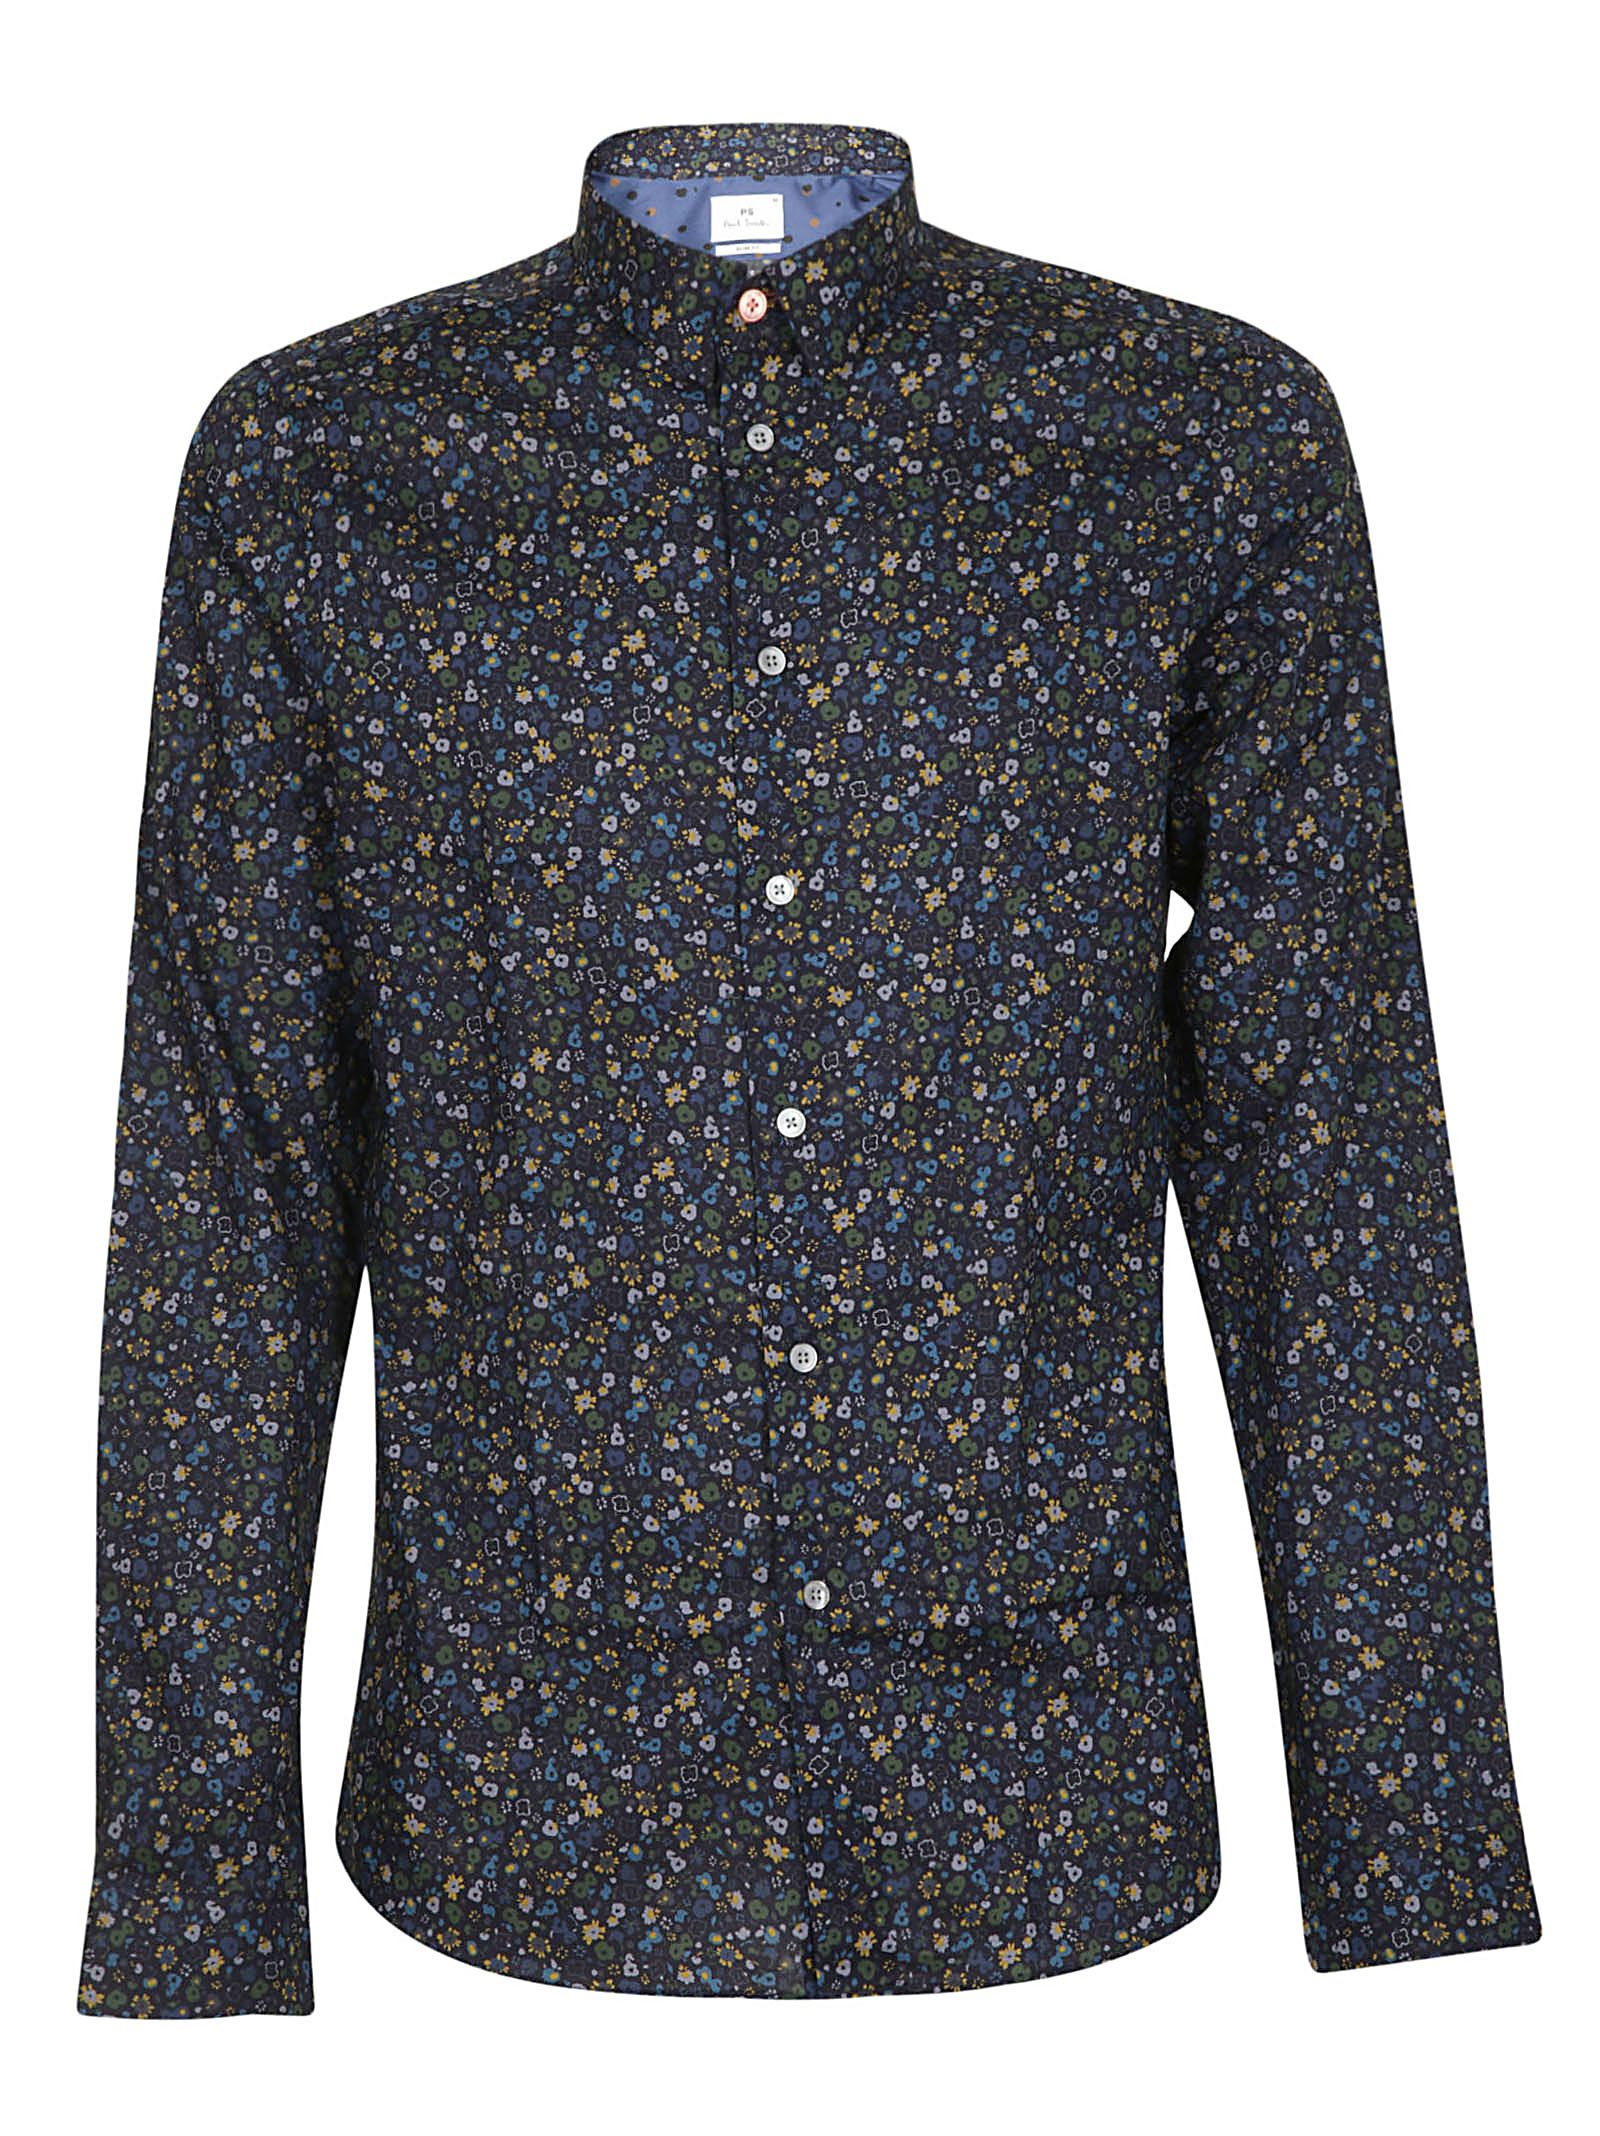 Paul Smith Floral Shirt